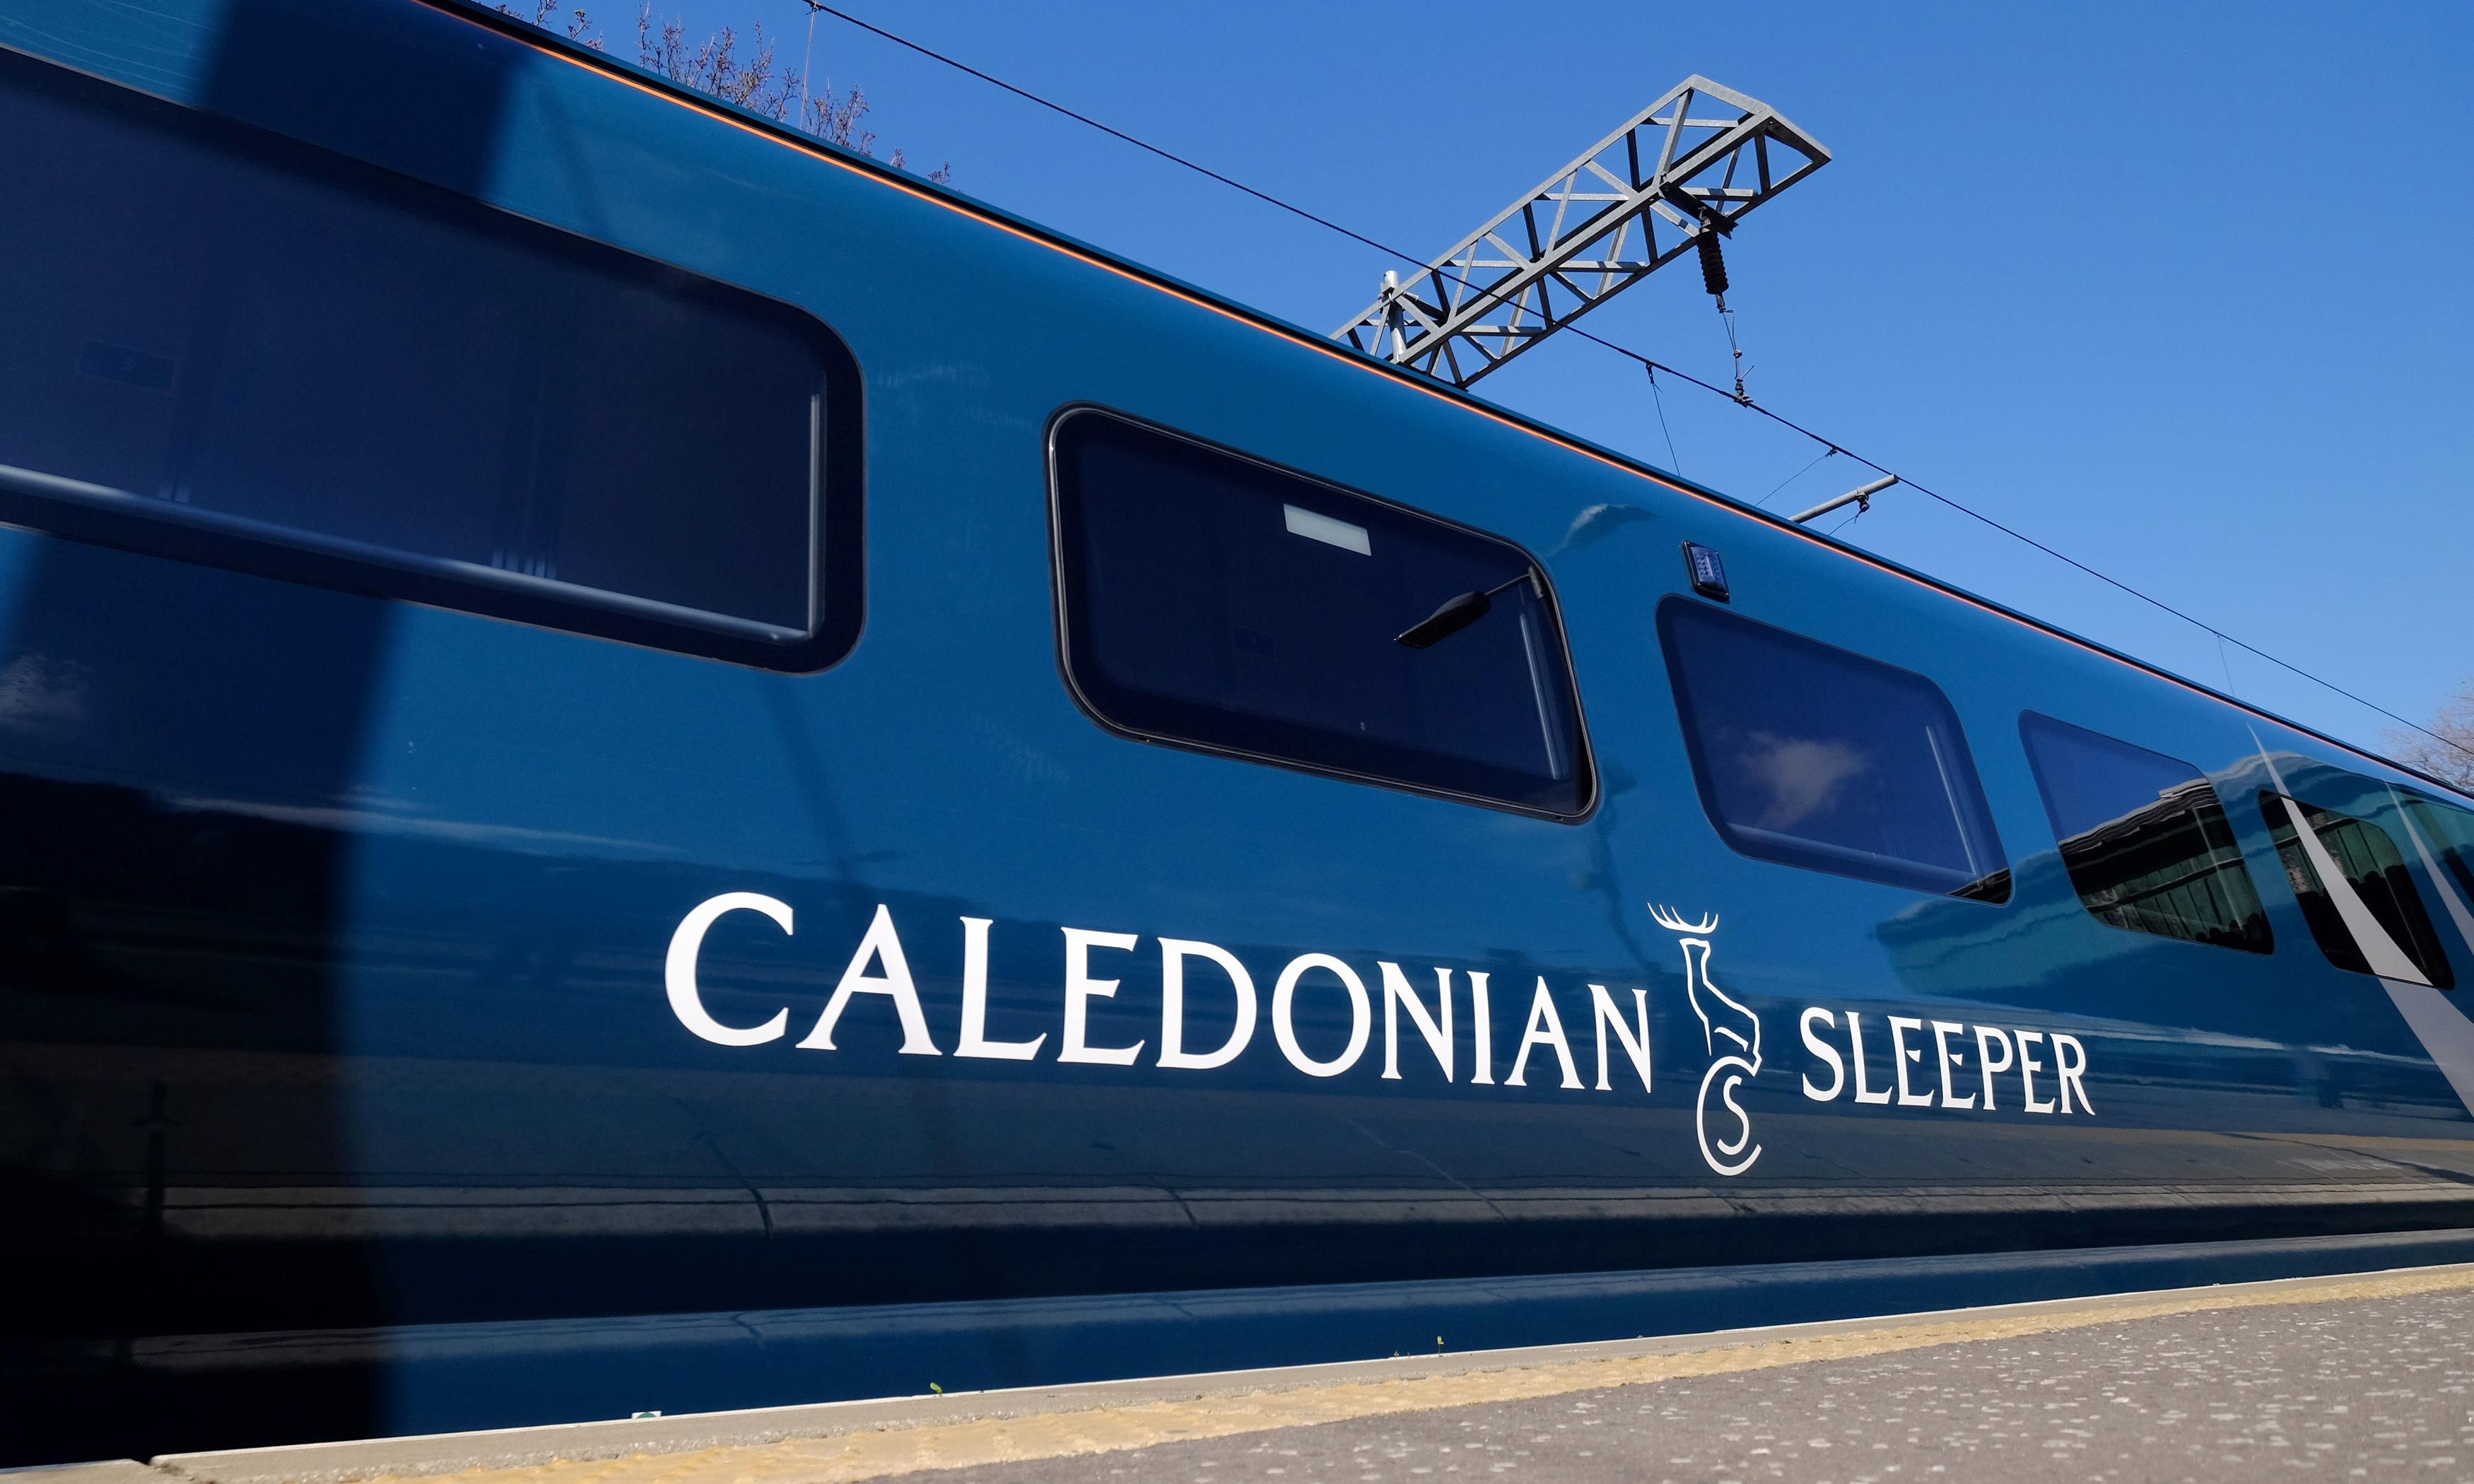 Caledonian Sleeper suffers setbacks with Highlands train delay